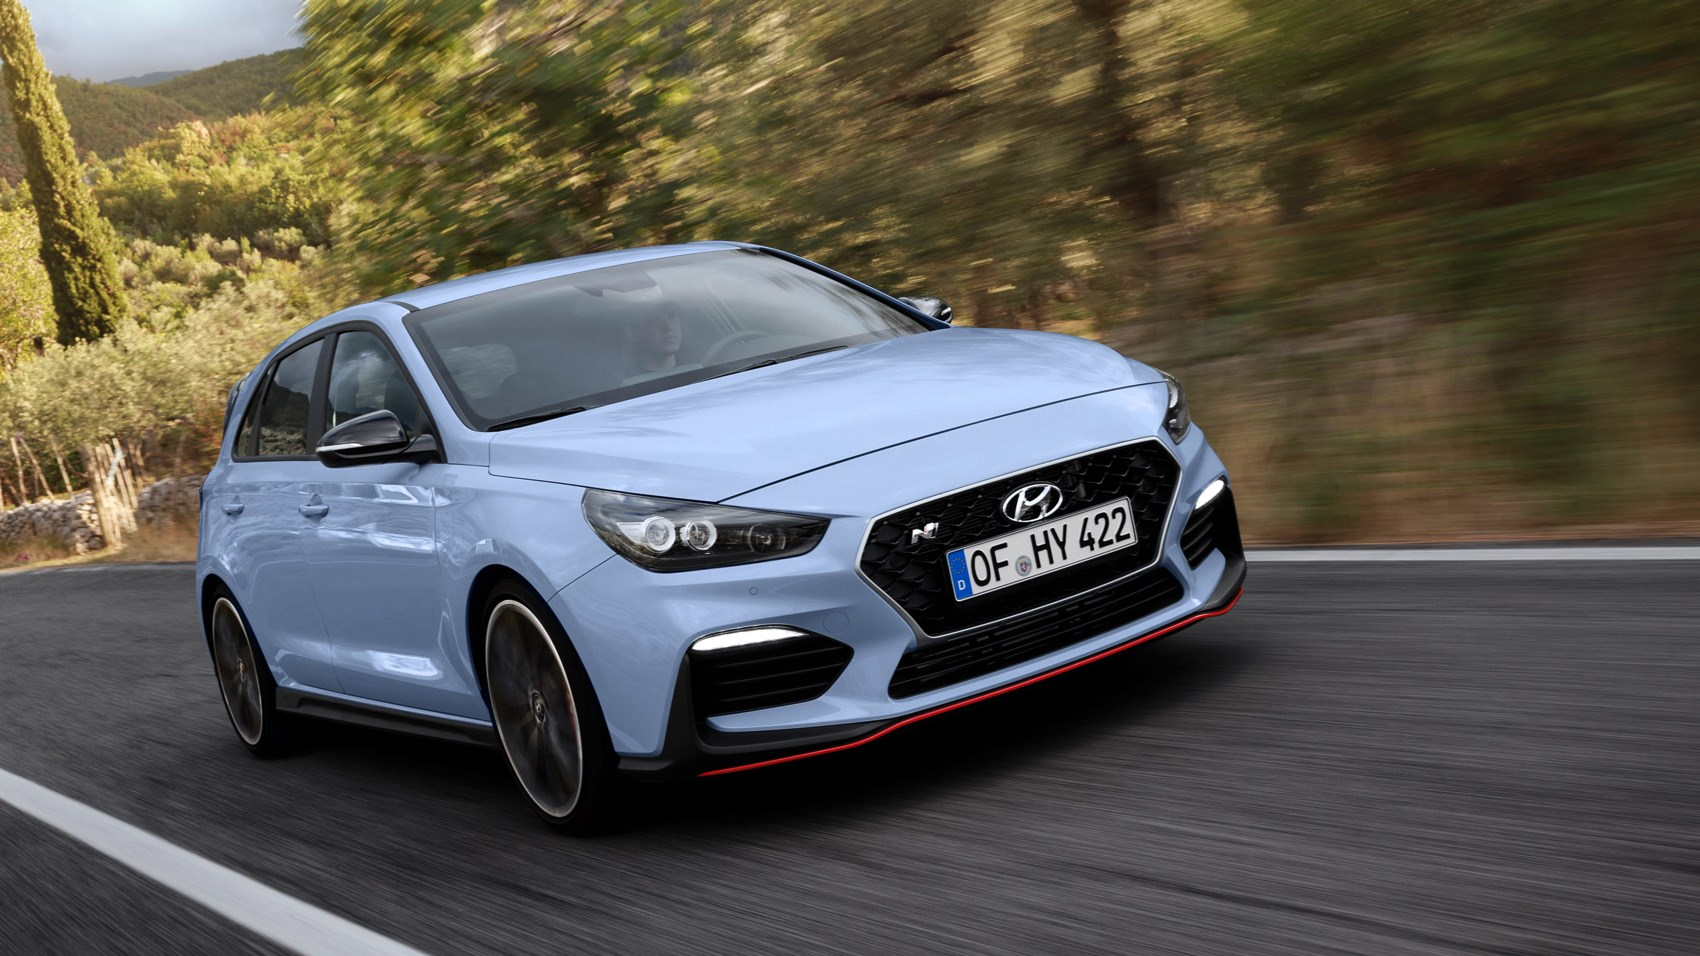 hyundai i30 n 2017 review car magazine. Black Bedroom Furniture Sets. Home Design Ideas